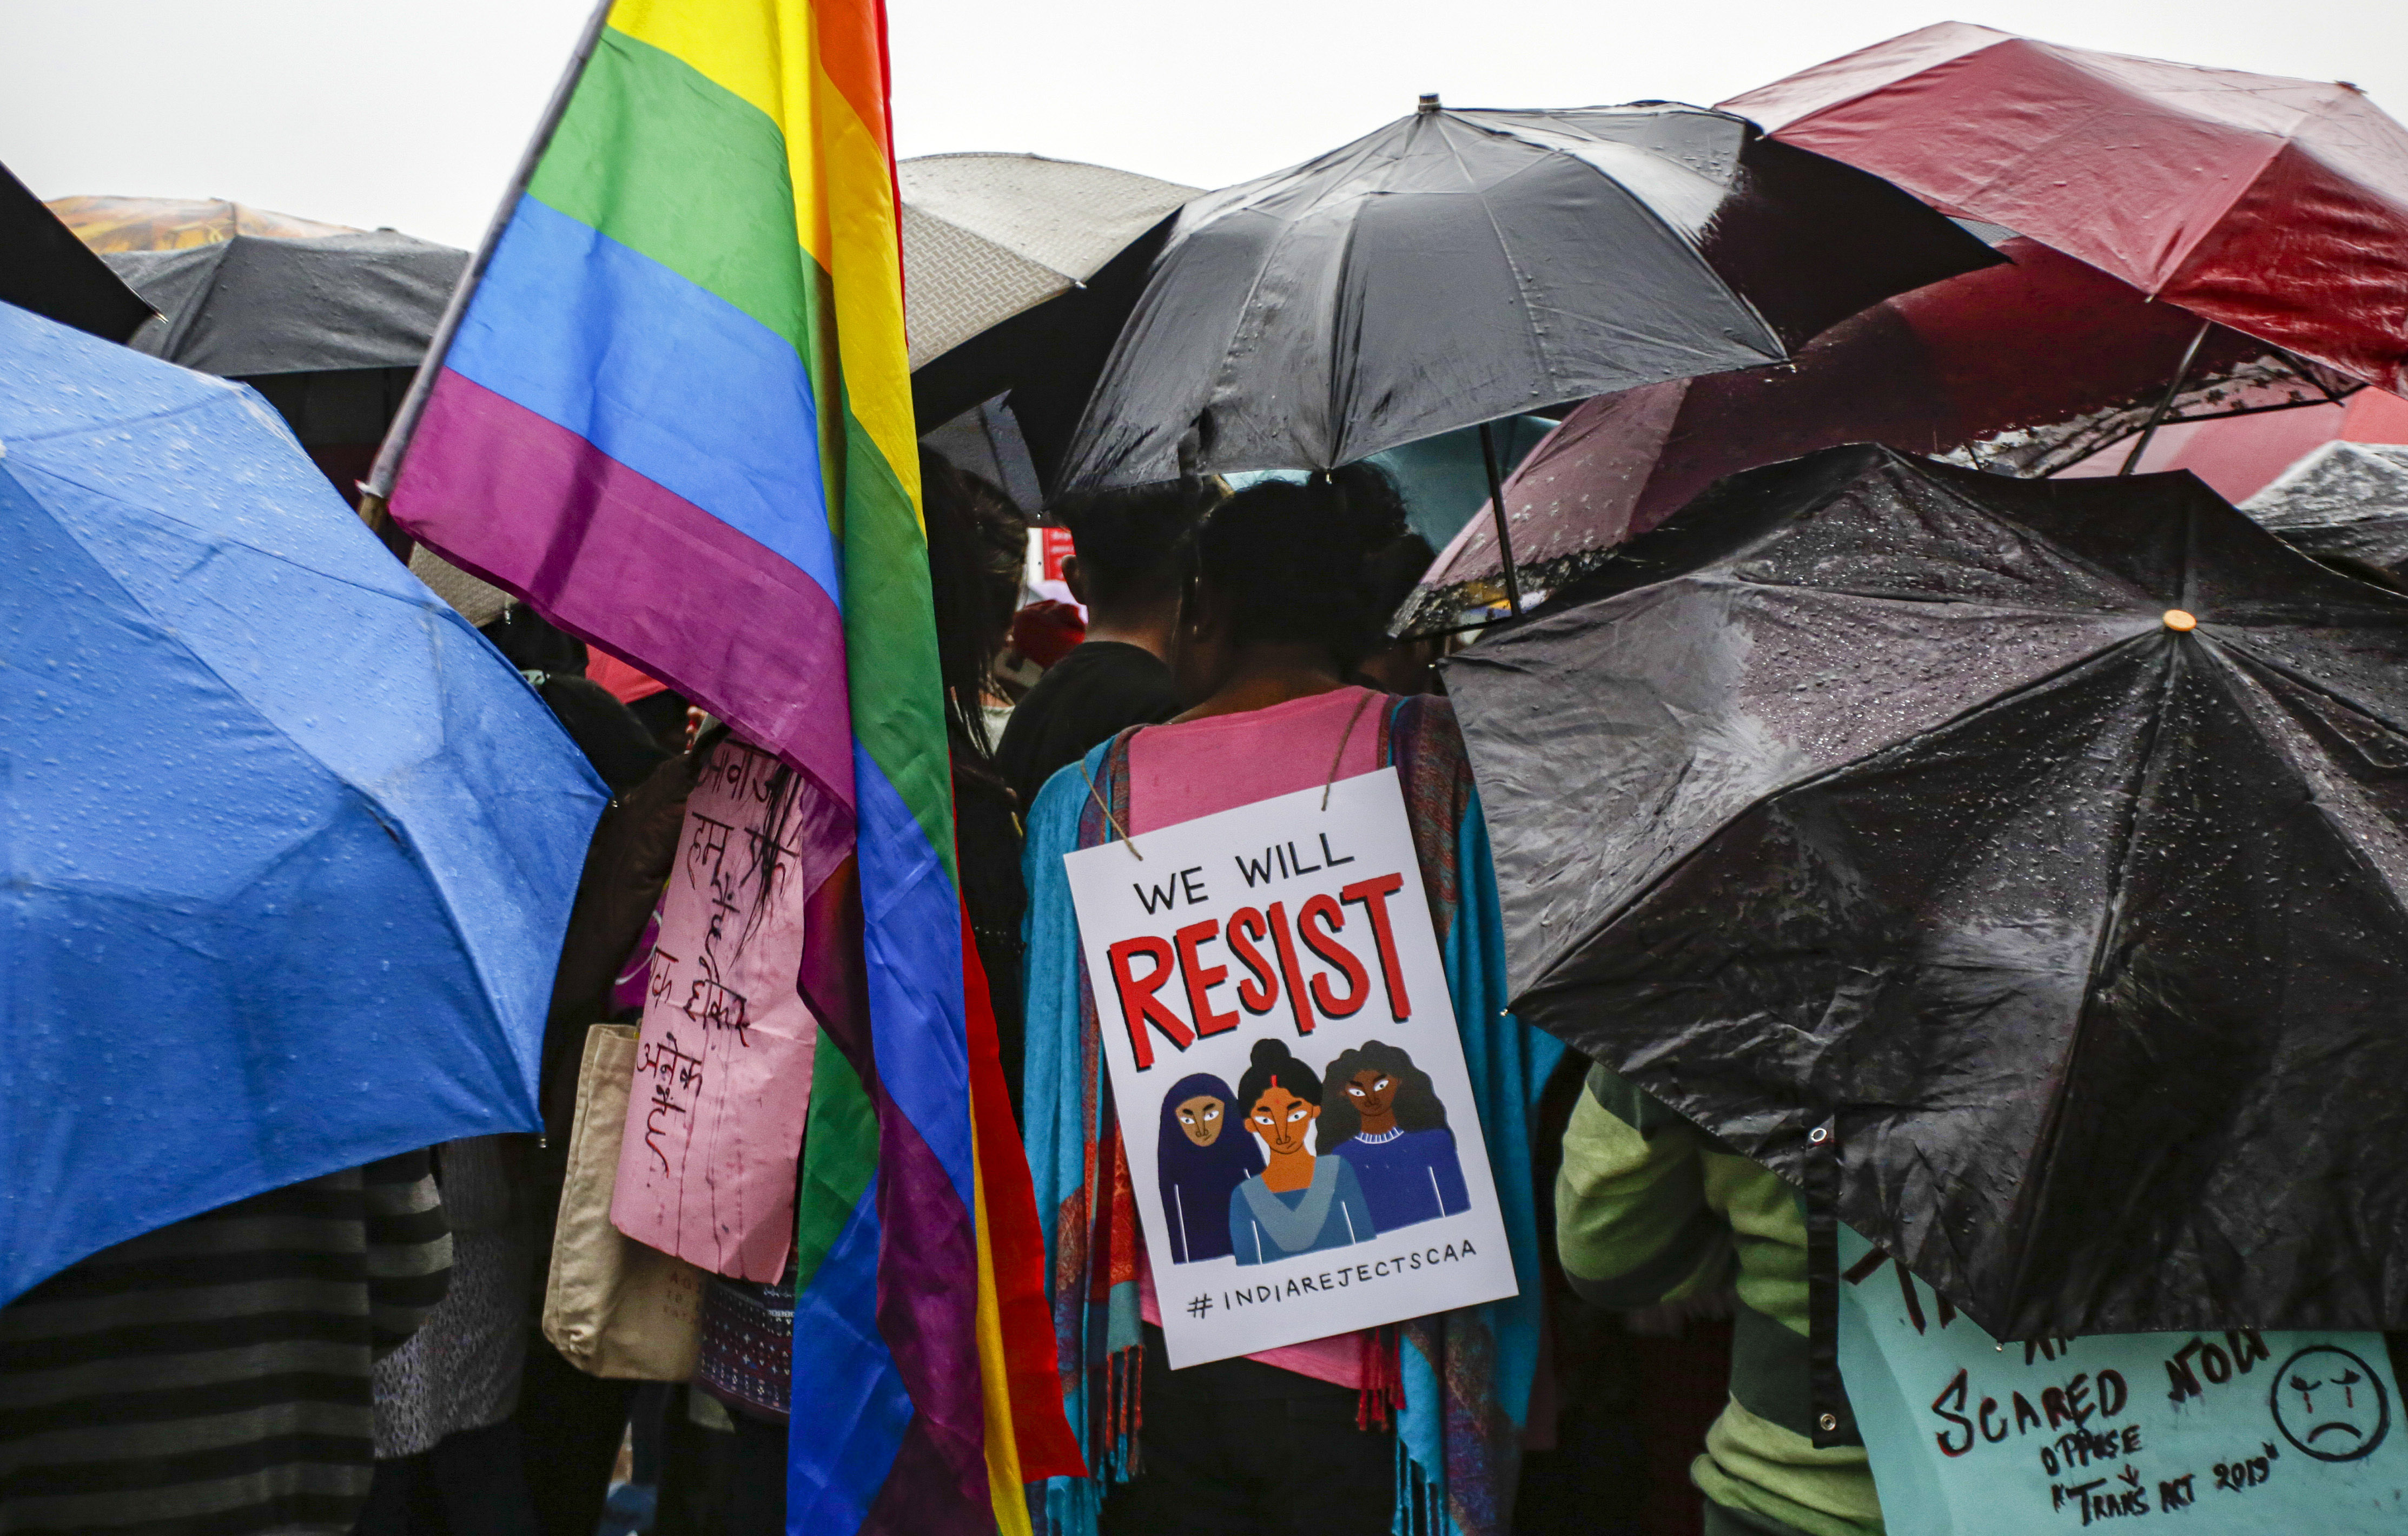 A member of LGBTQ community carries a placard while standing with others holding umbrellas as it rains during a rally to protest against the citizenship law that opponents say threatens India's secular identity, in Kolkata, India, Friday, January 3, 2020